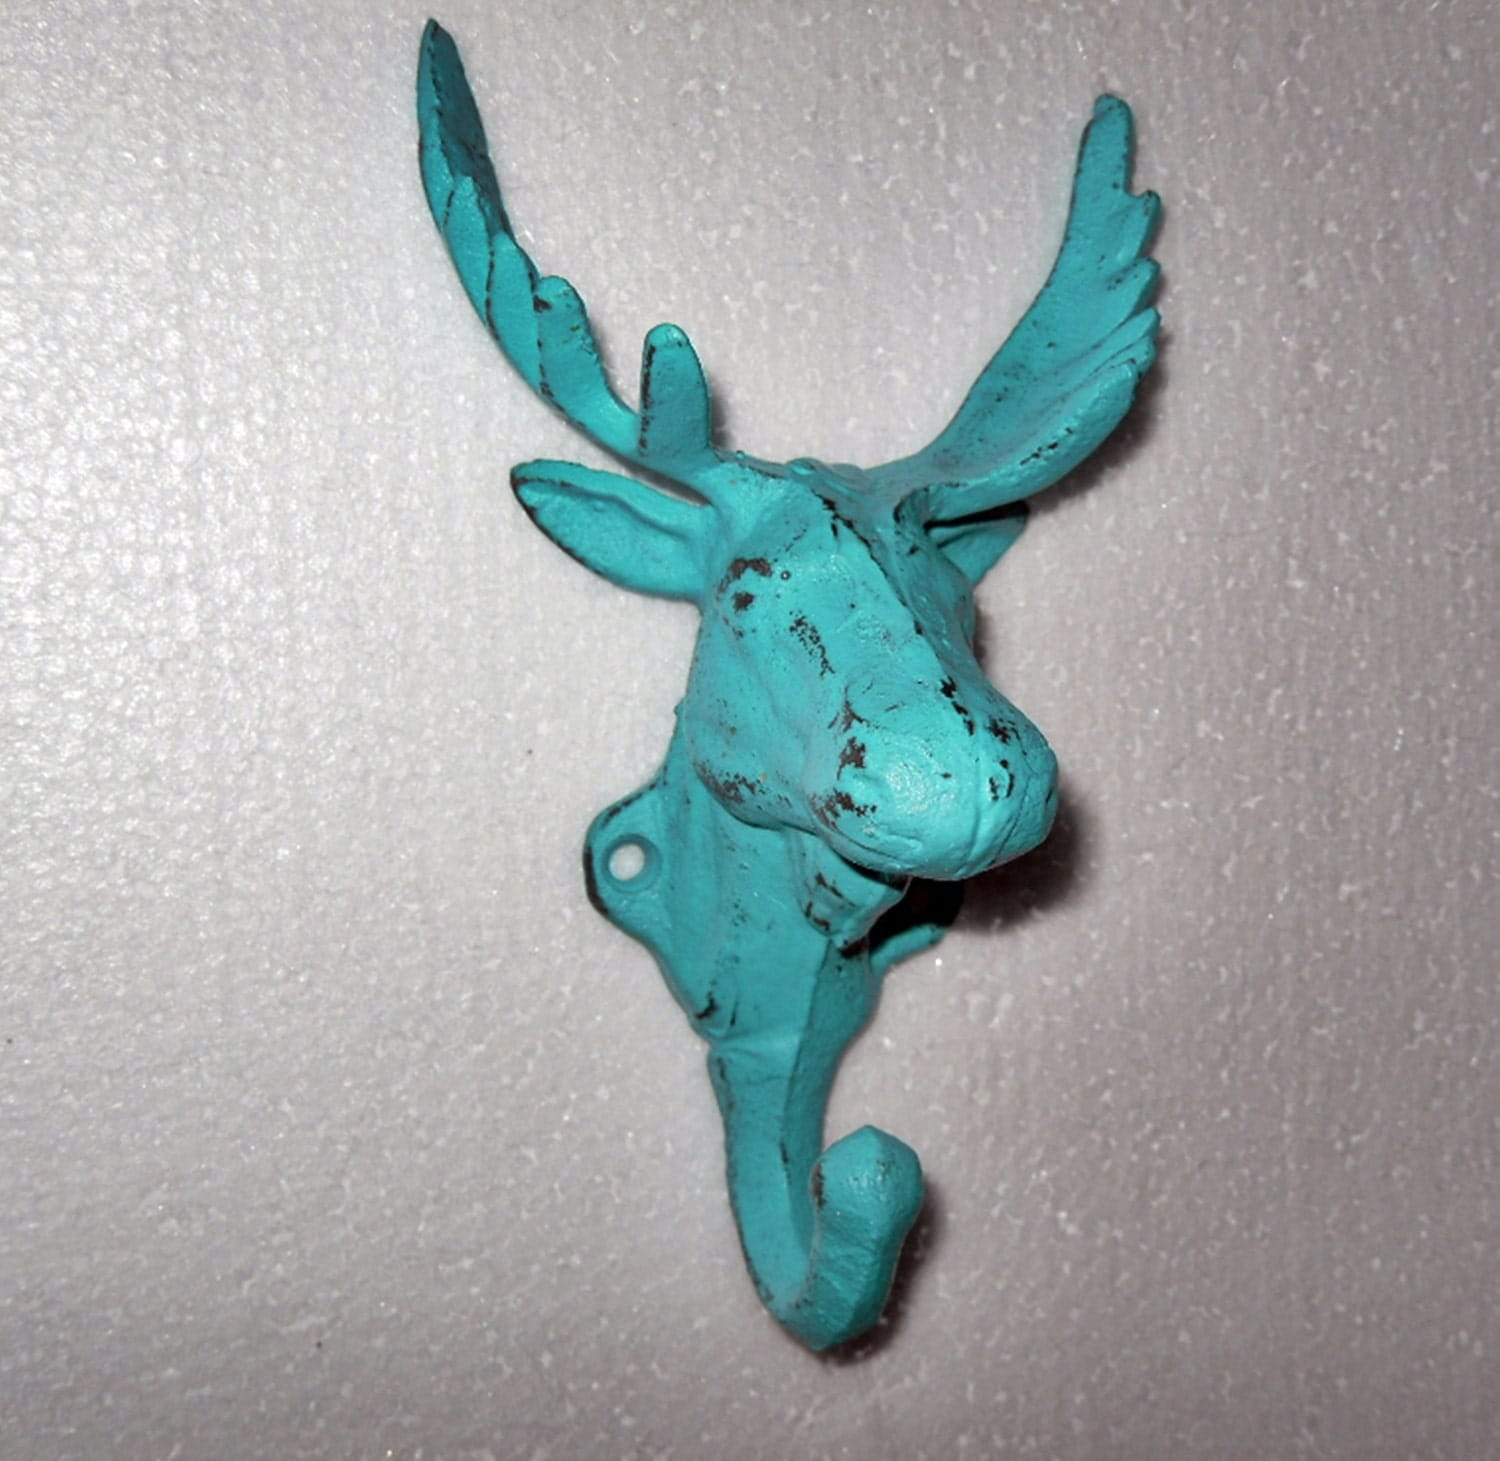 Aqua Moose Head / Aqua Wall Decor / Moose Hook / by Theshabbyshak